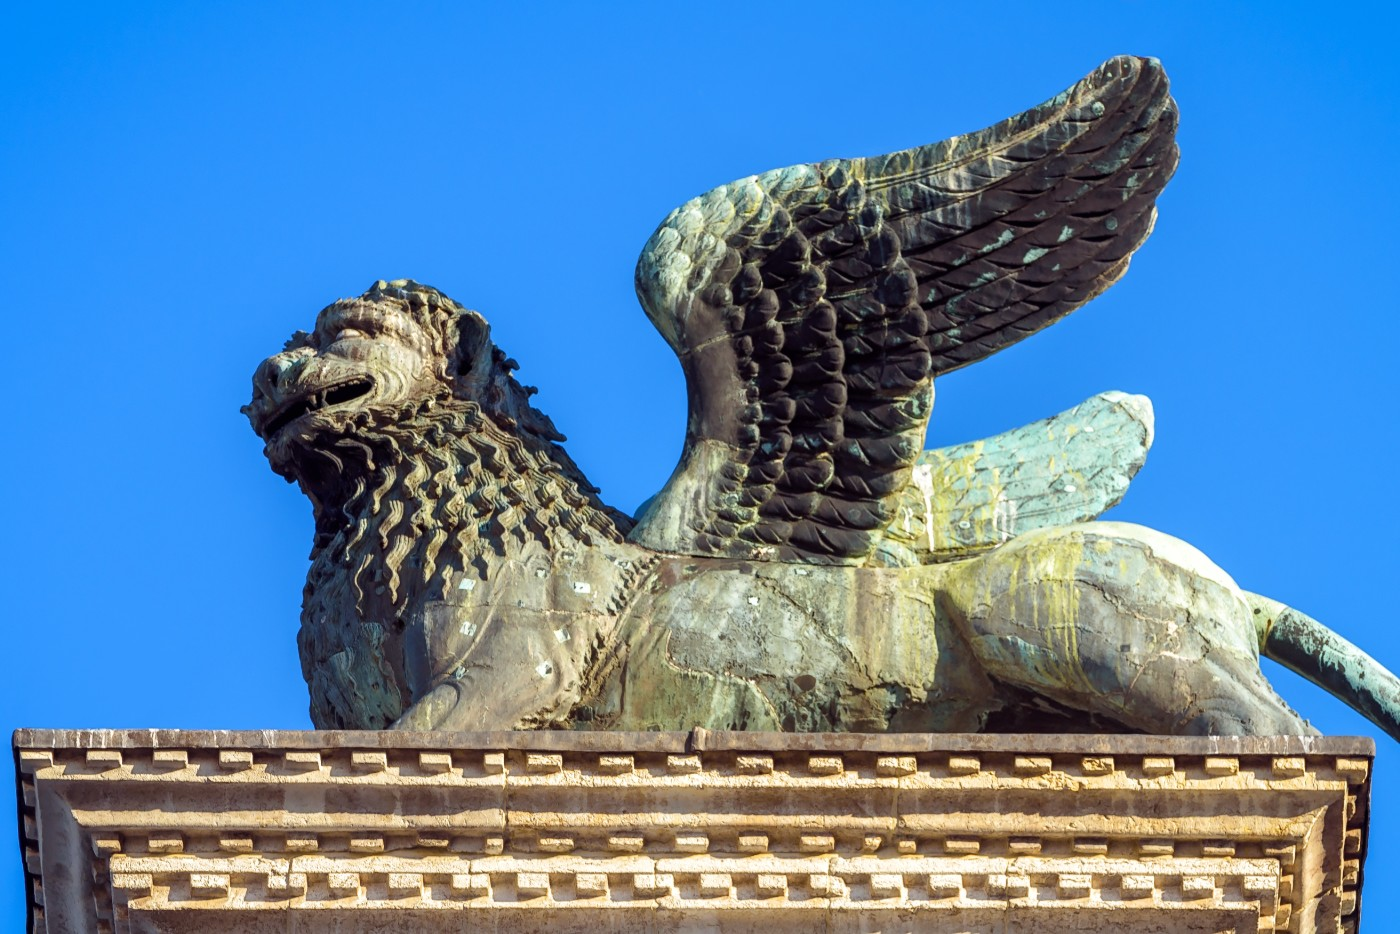 https://tickertapecdn.tdameritrade.com/assets/images/pages/md/Winged lion, Venice: cost basis & mythical creatures